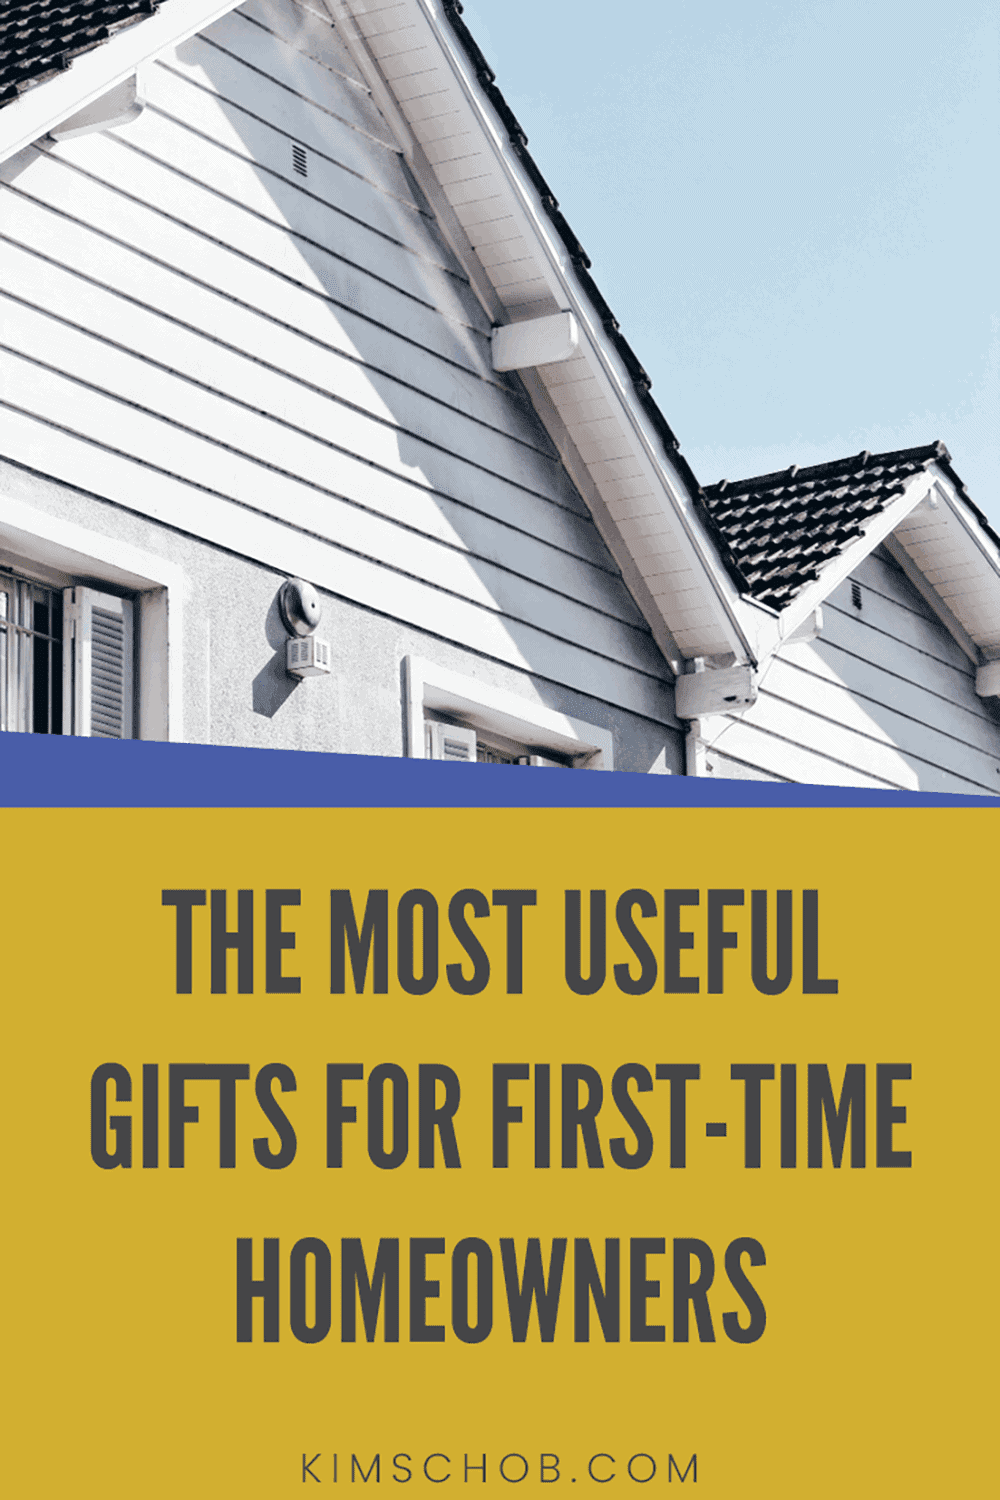 First-Time Homeowners | kimschob.com